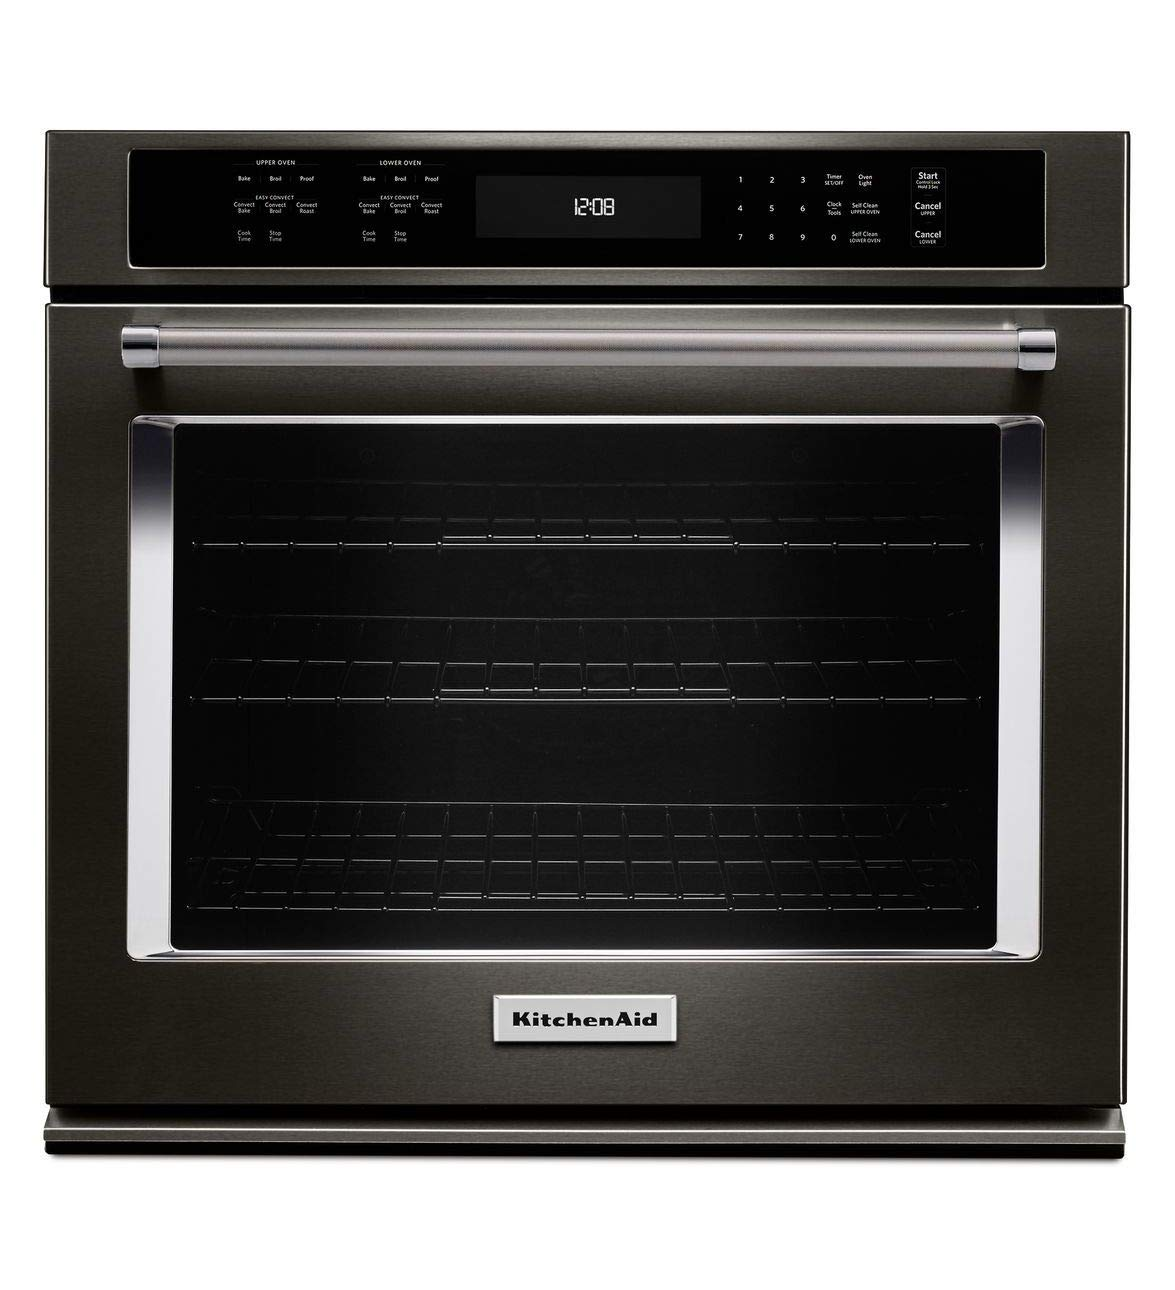 KitchenAid KOSE500EBS 30 Inch Single Electric Wall Oven with 5.0 cu. ft. Even-Heat True Convection Oven, Self-Clean, Preheat, Temperature Conversion, Temperature Probe and Roll-Out Rack